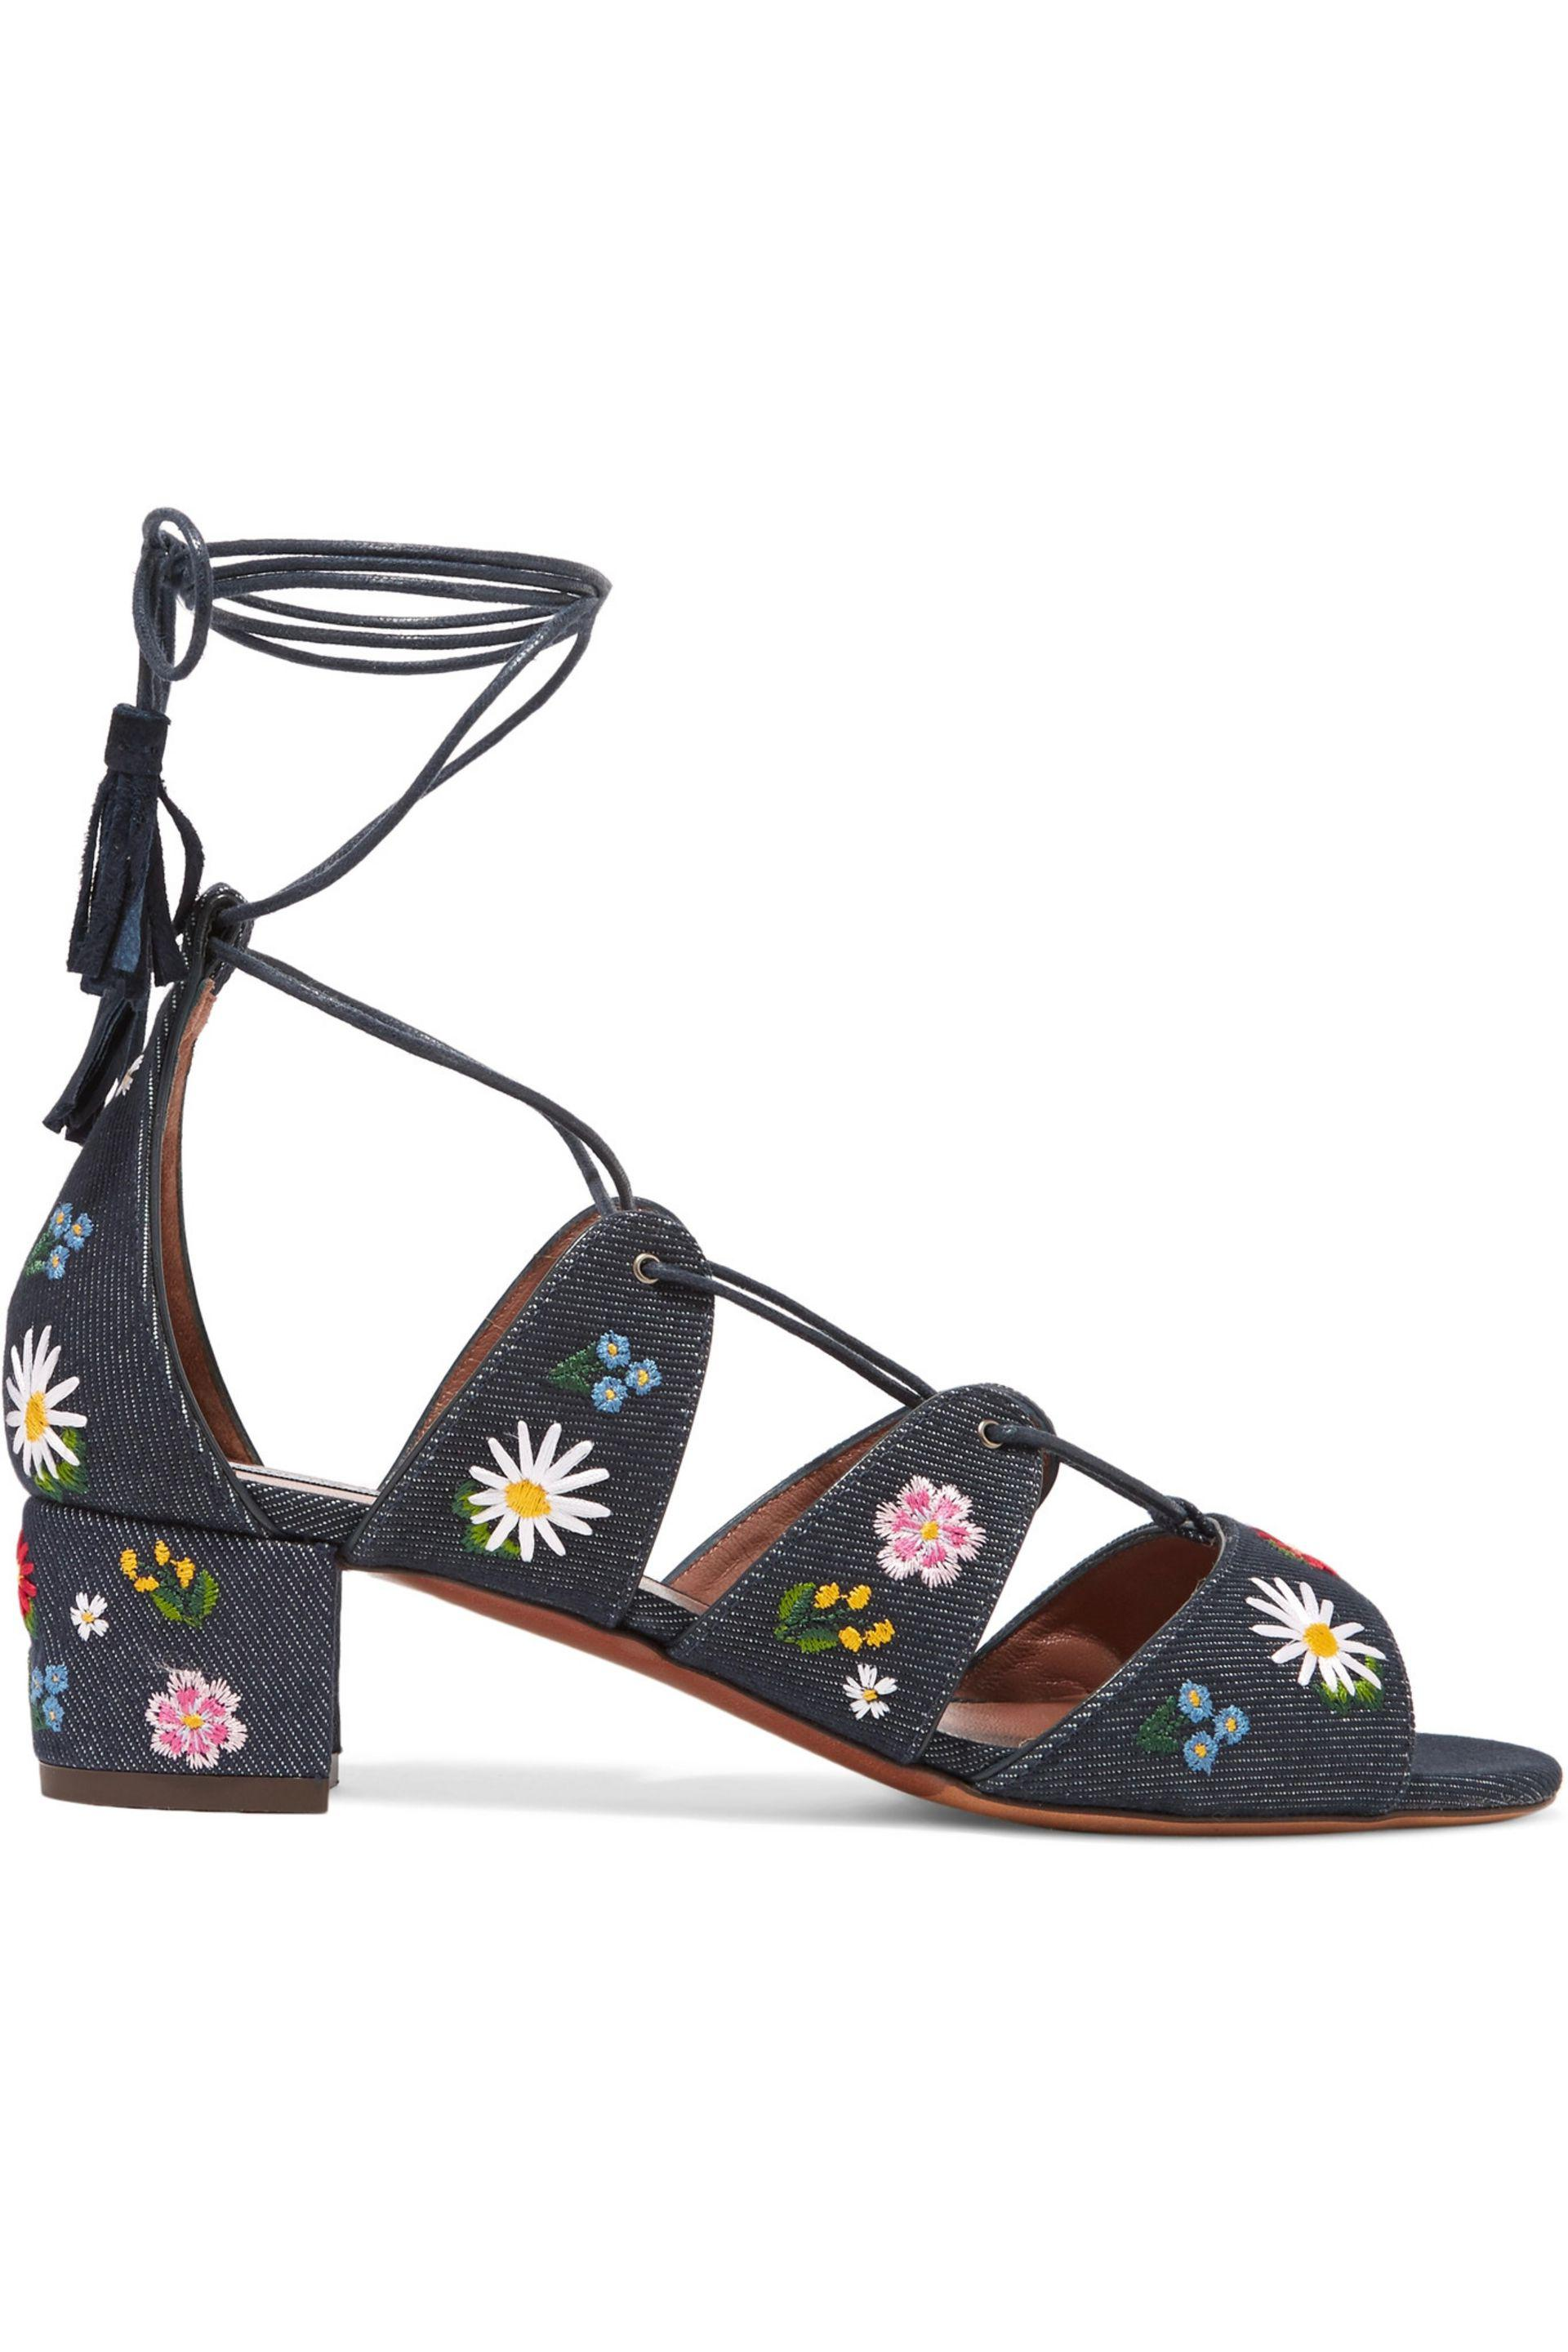 embroidered denim sandals - Blue Tabitha Simmons